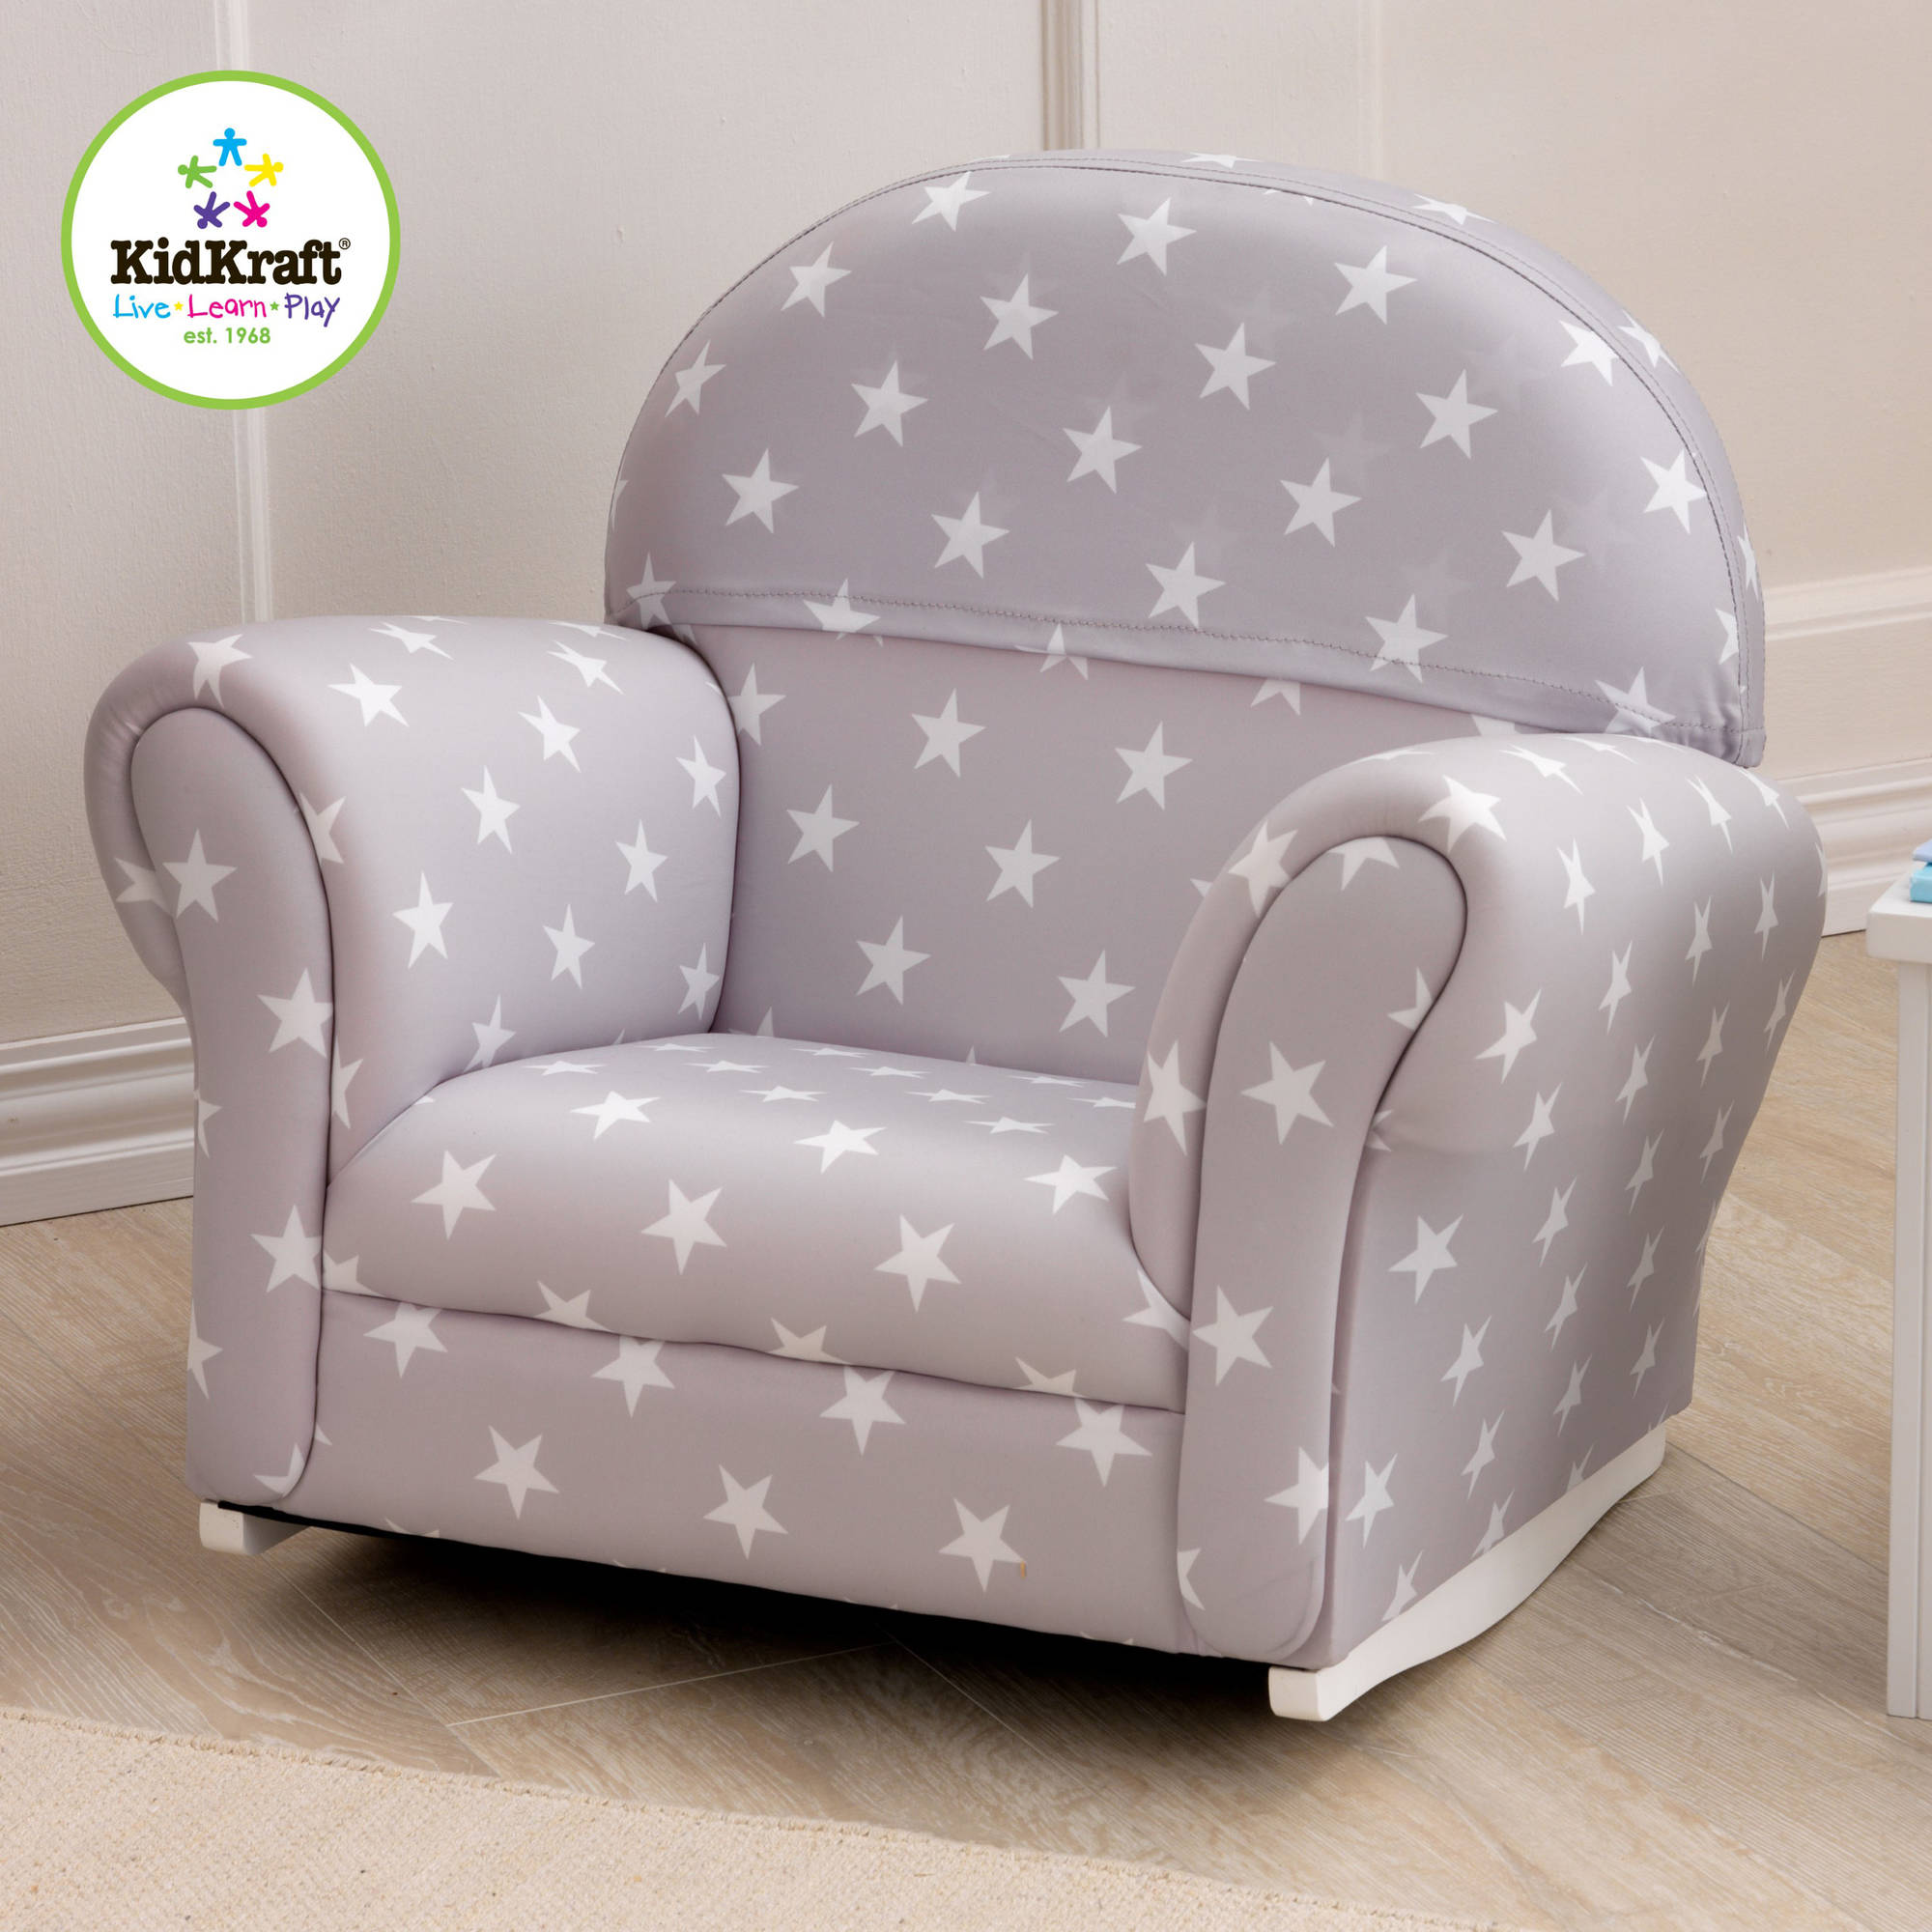 KidKraft Upholstered Rocker, Grey with Stars